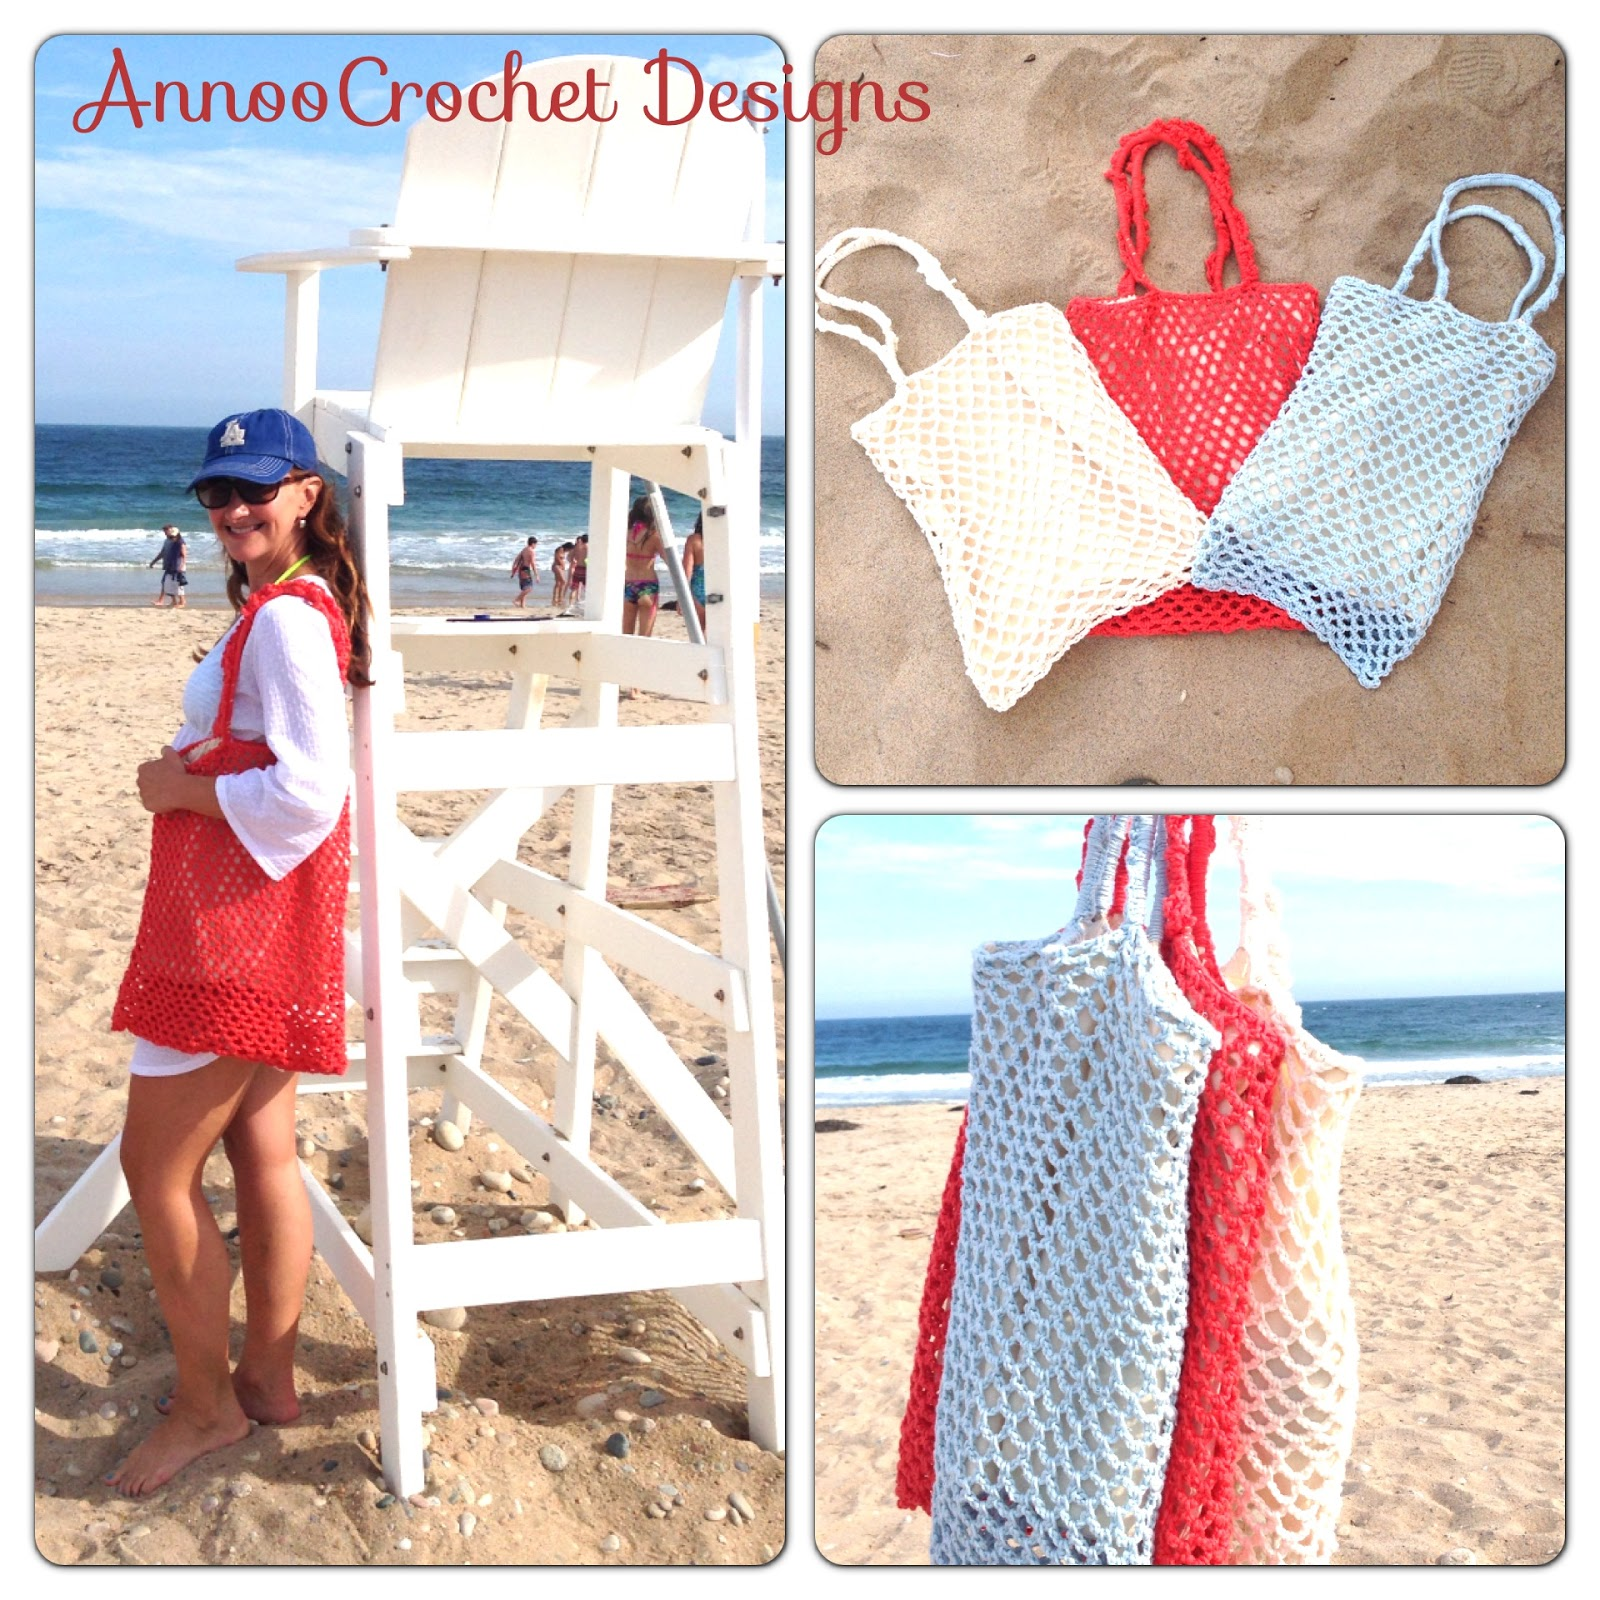 Annoo\'s Crochet World: Vintage Up cycled Beach Bag Free Pattern